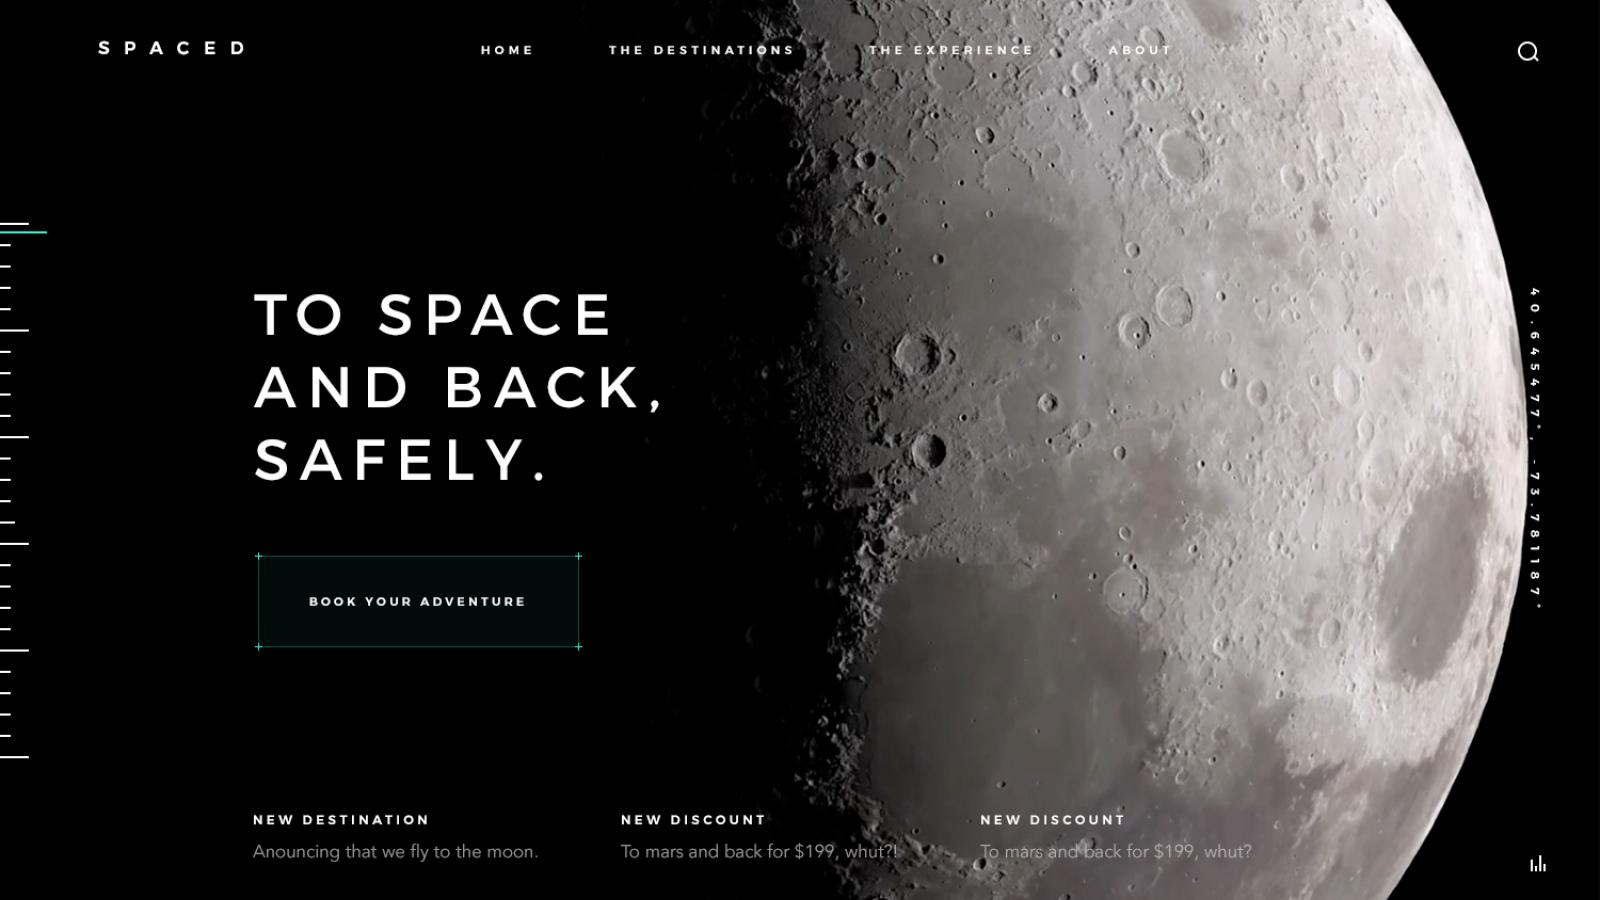 #SPACEDChallenge: Best Design to win a MacBook Pro